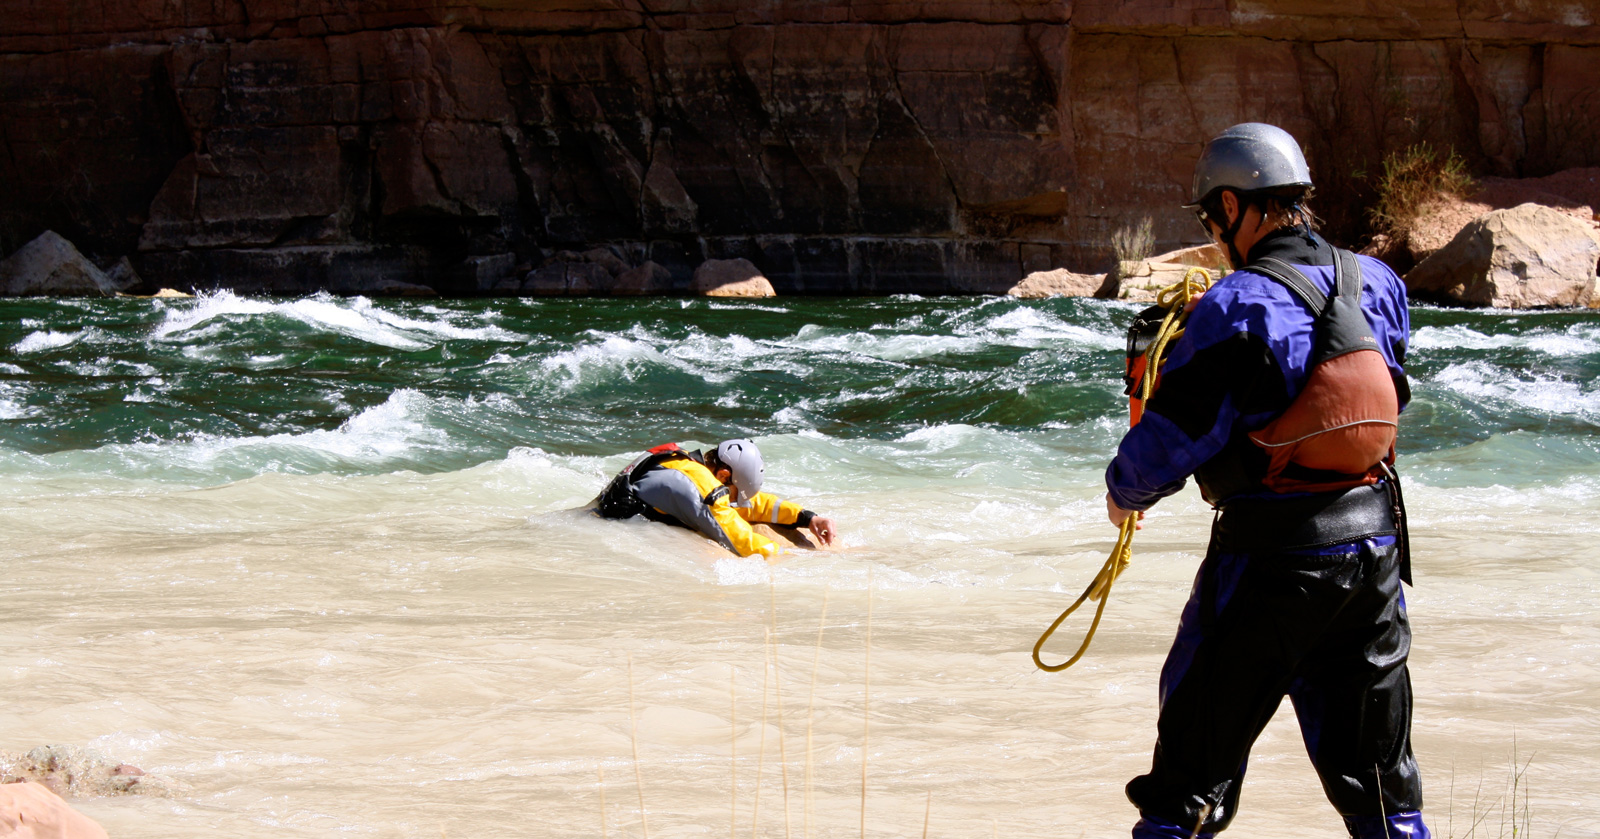 swiftwater-rescue-training-srt-1